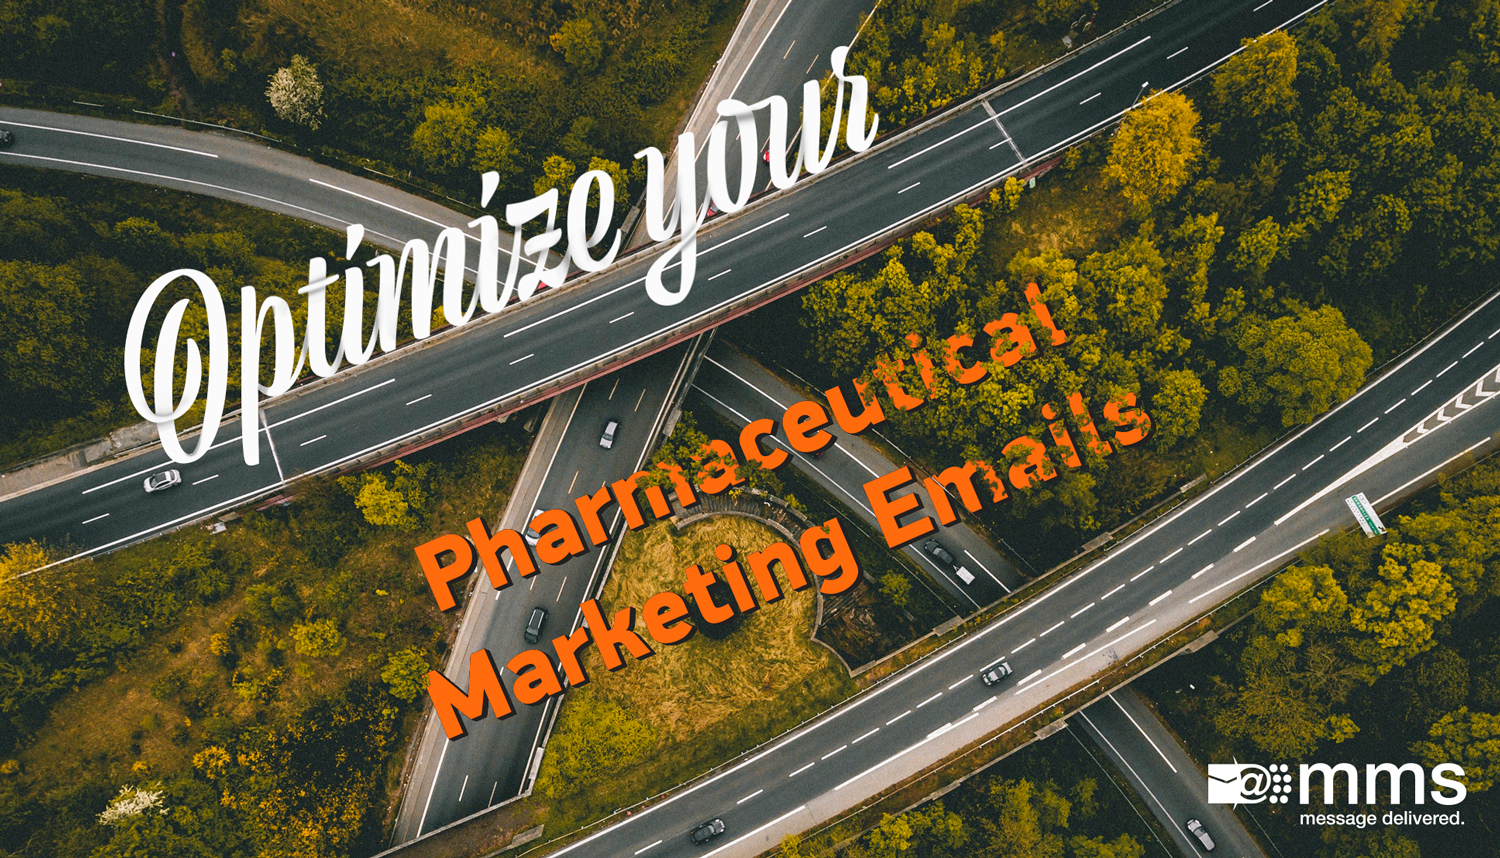 Pharmaceutical Email Marketing A/B testing